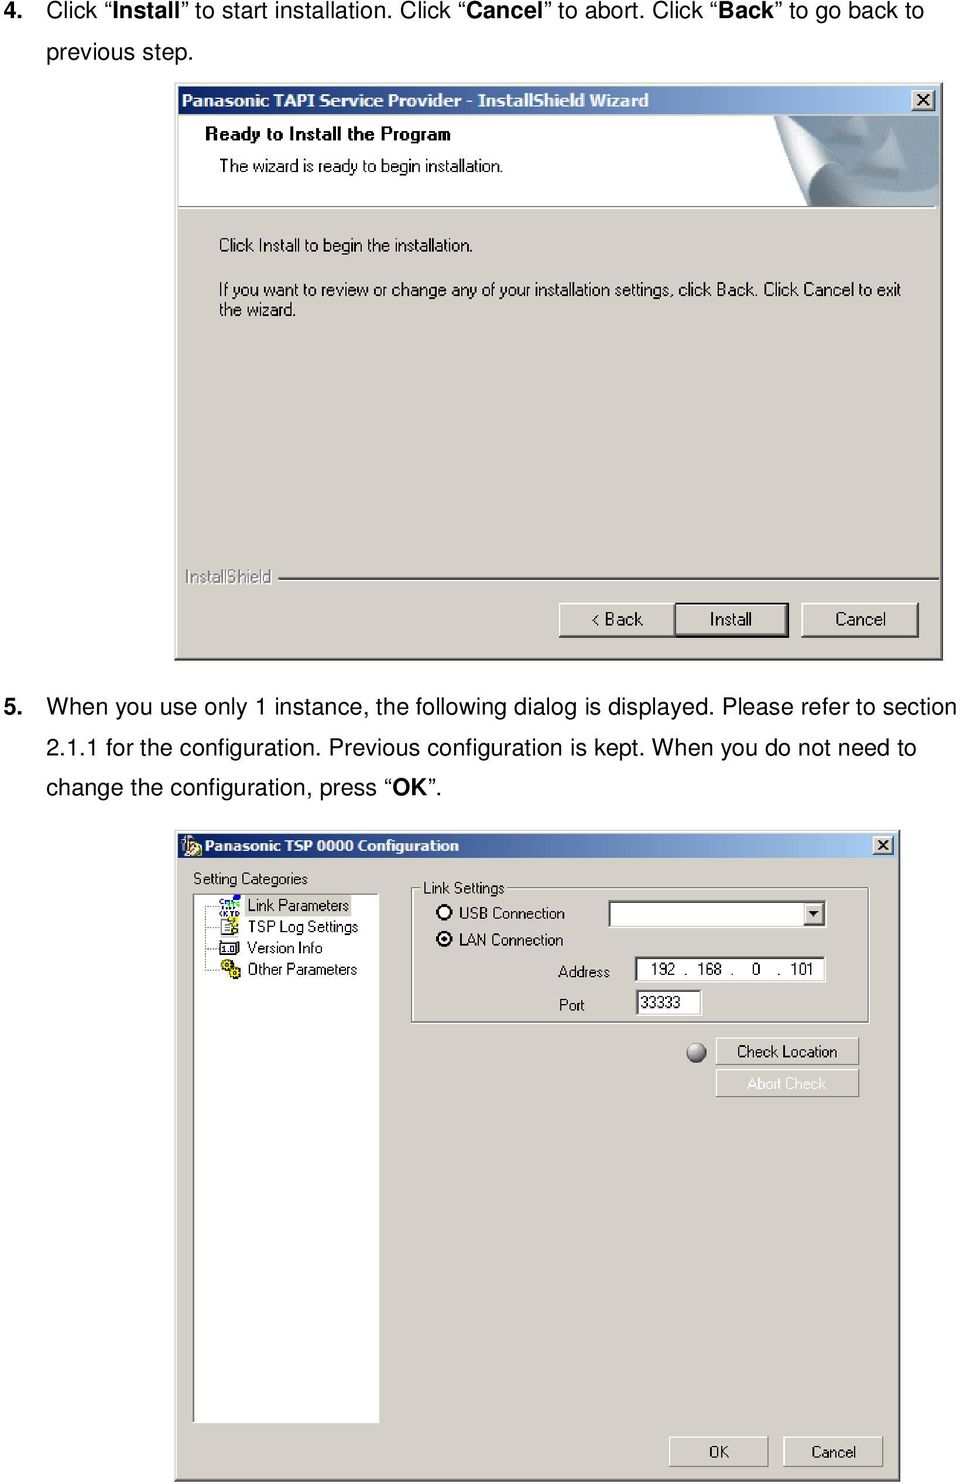 When you use only 1 instance, the following dialog is displayed.